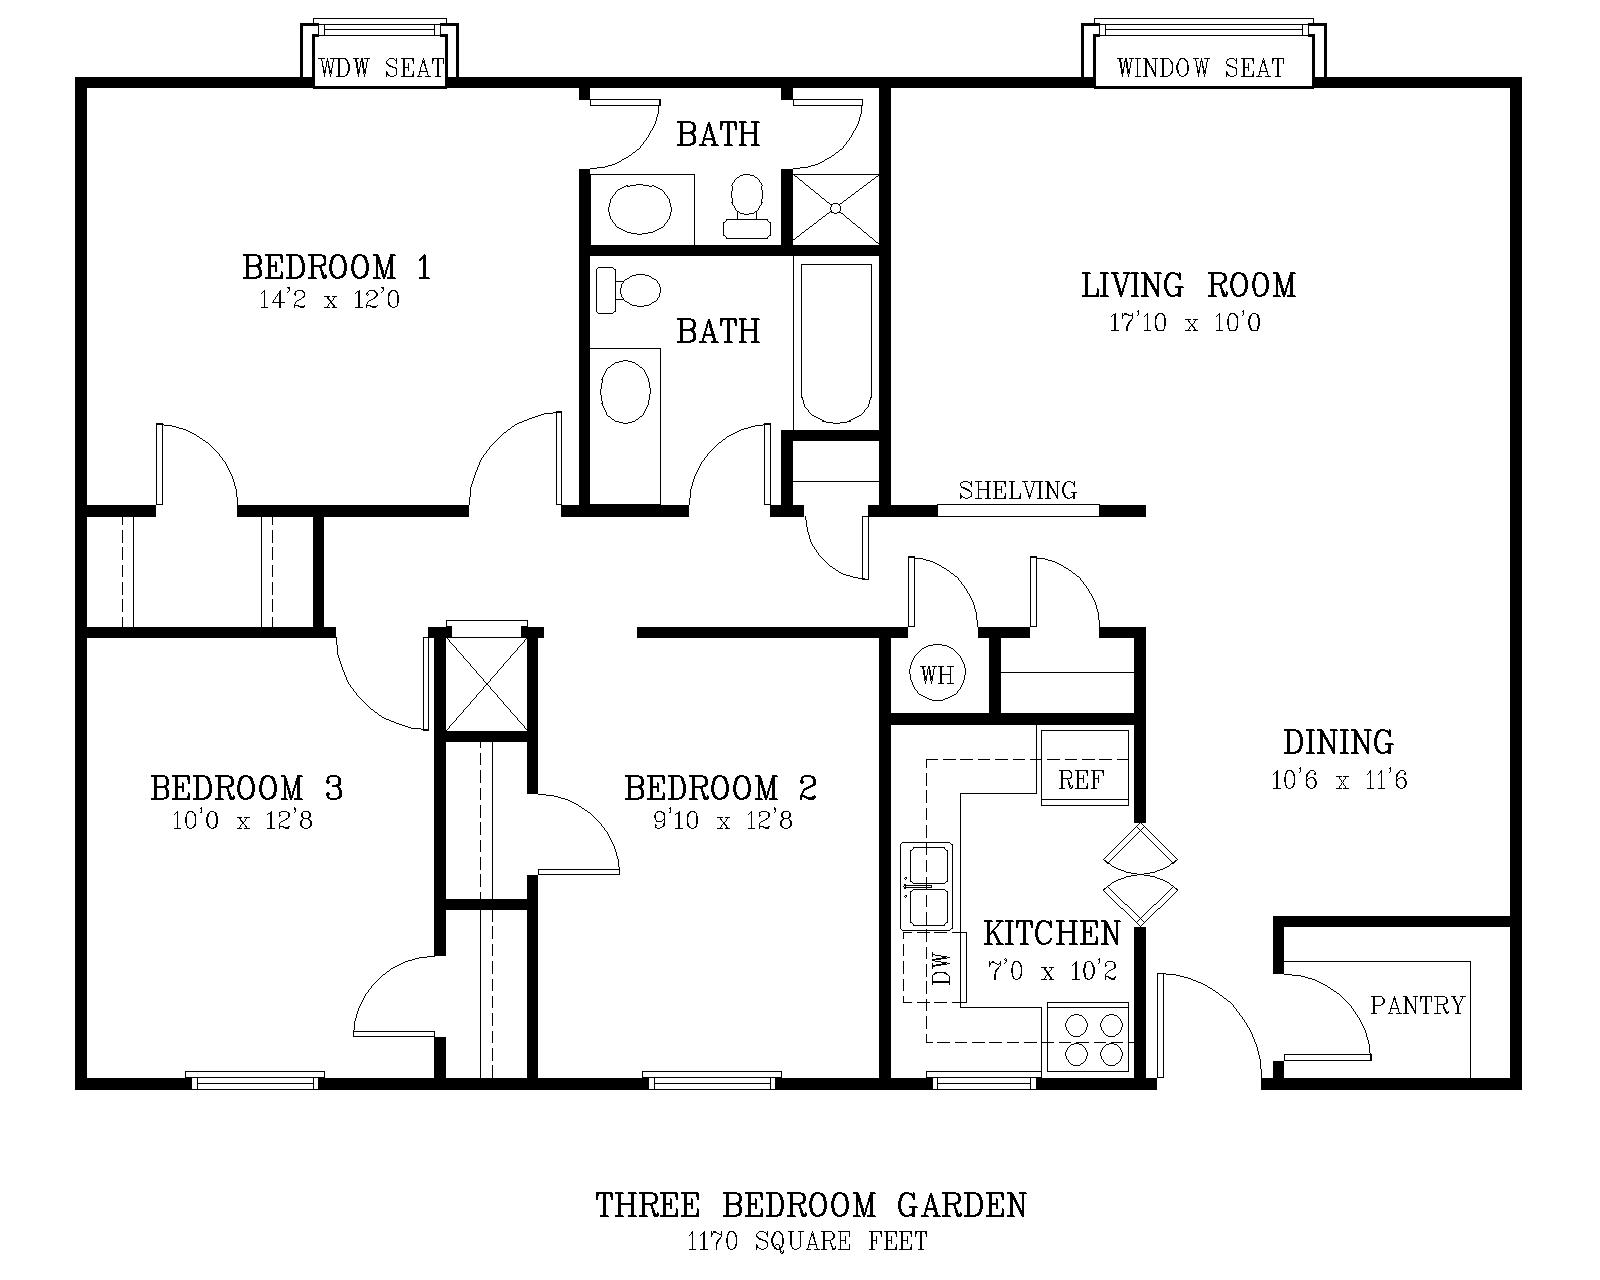 The courtyard for Standard 3 bedroom house plans